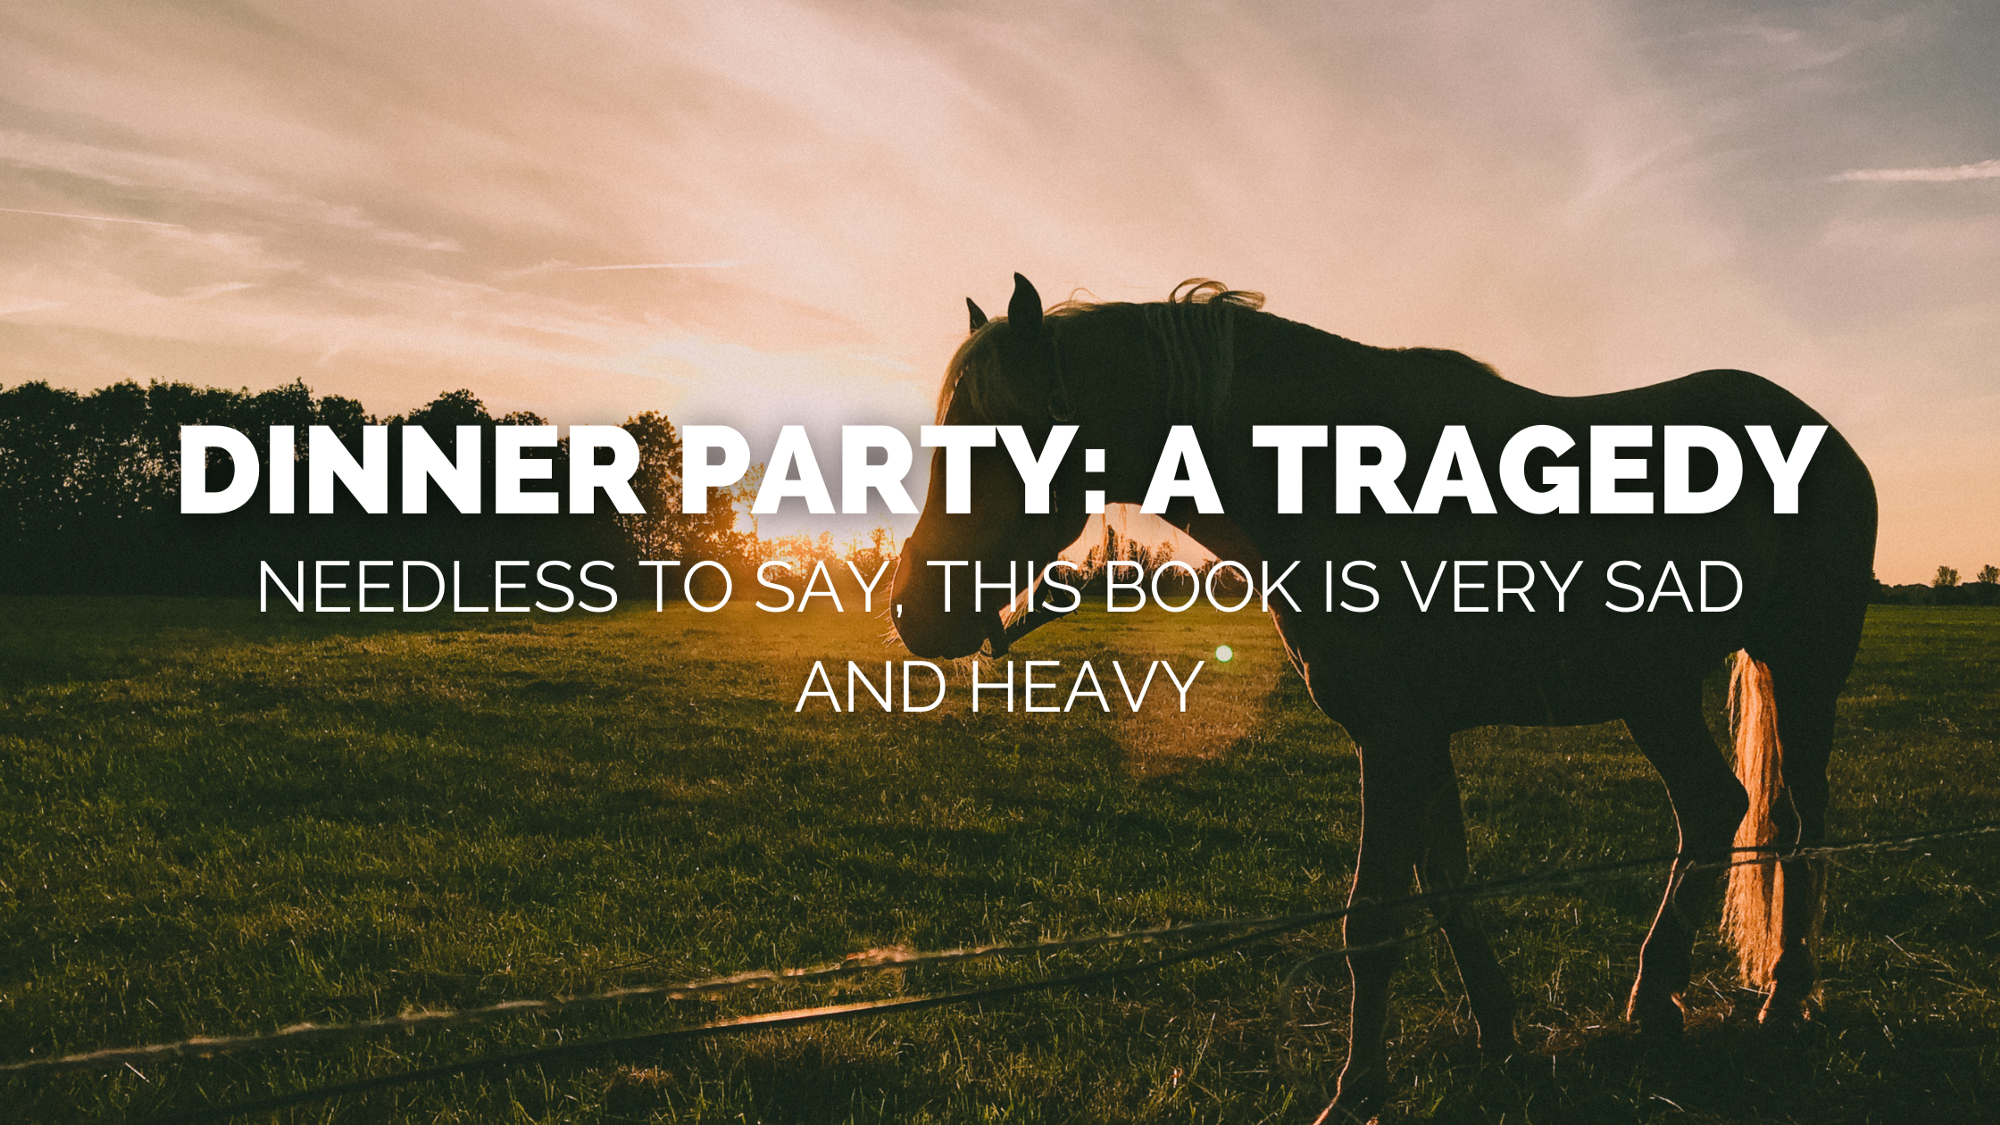 Dinner Party: A Tragedy. Needless to say, this book is very sad and heavy.